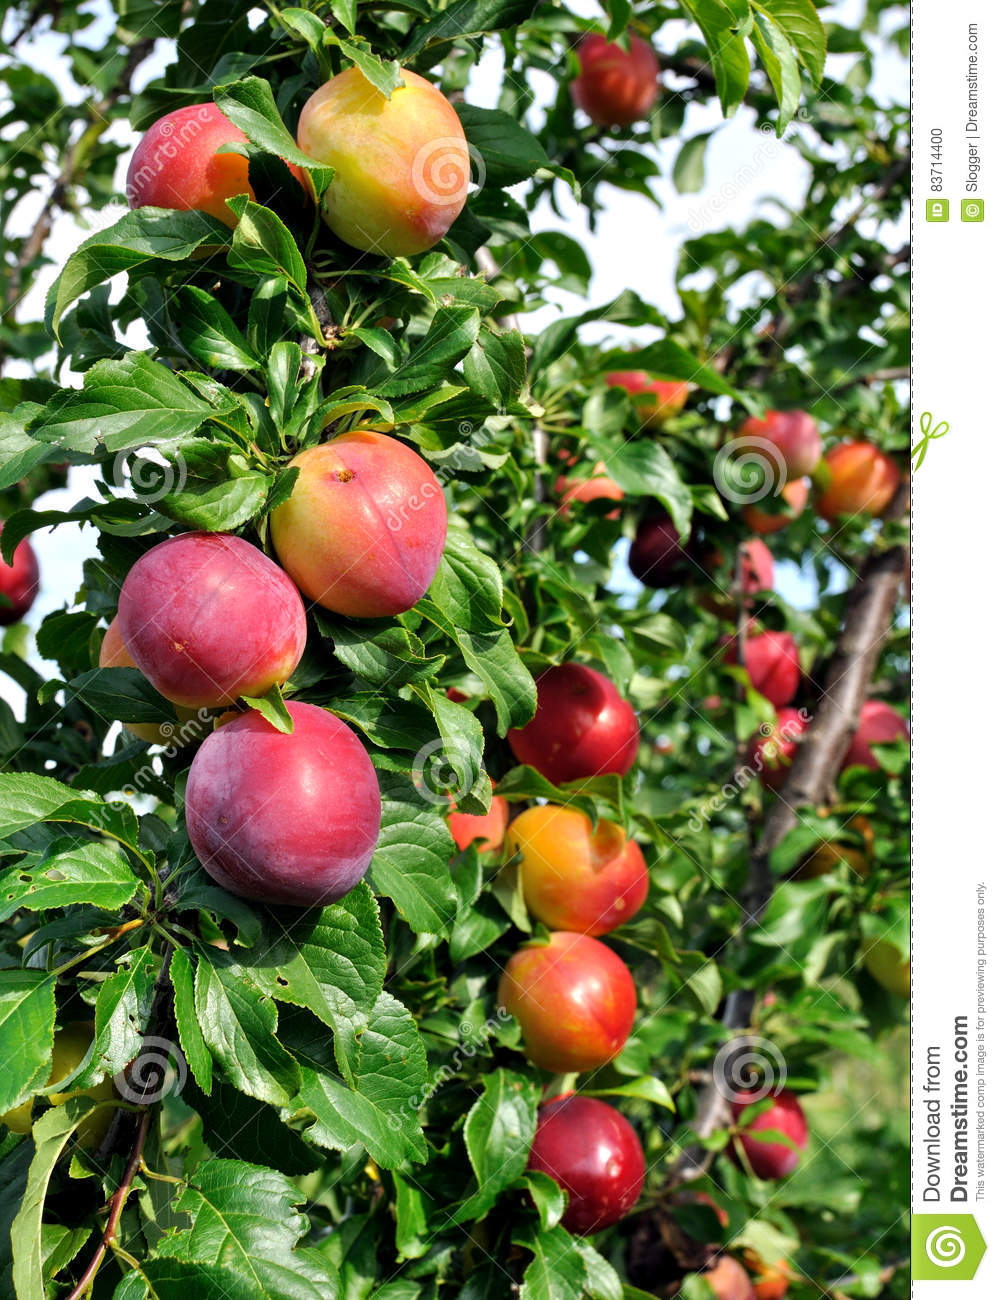 Ripe Plums On A Tree Branch Stock Photo